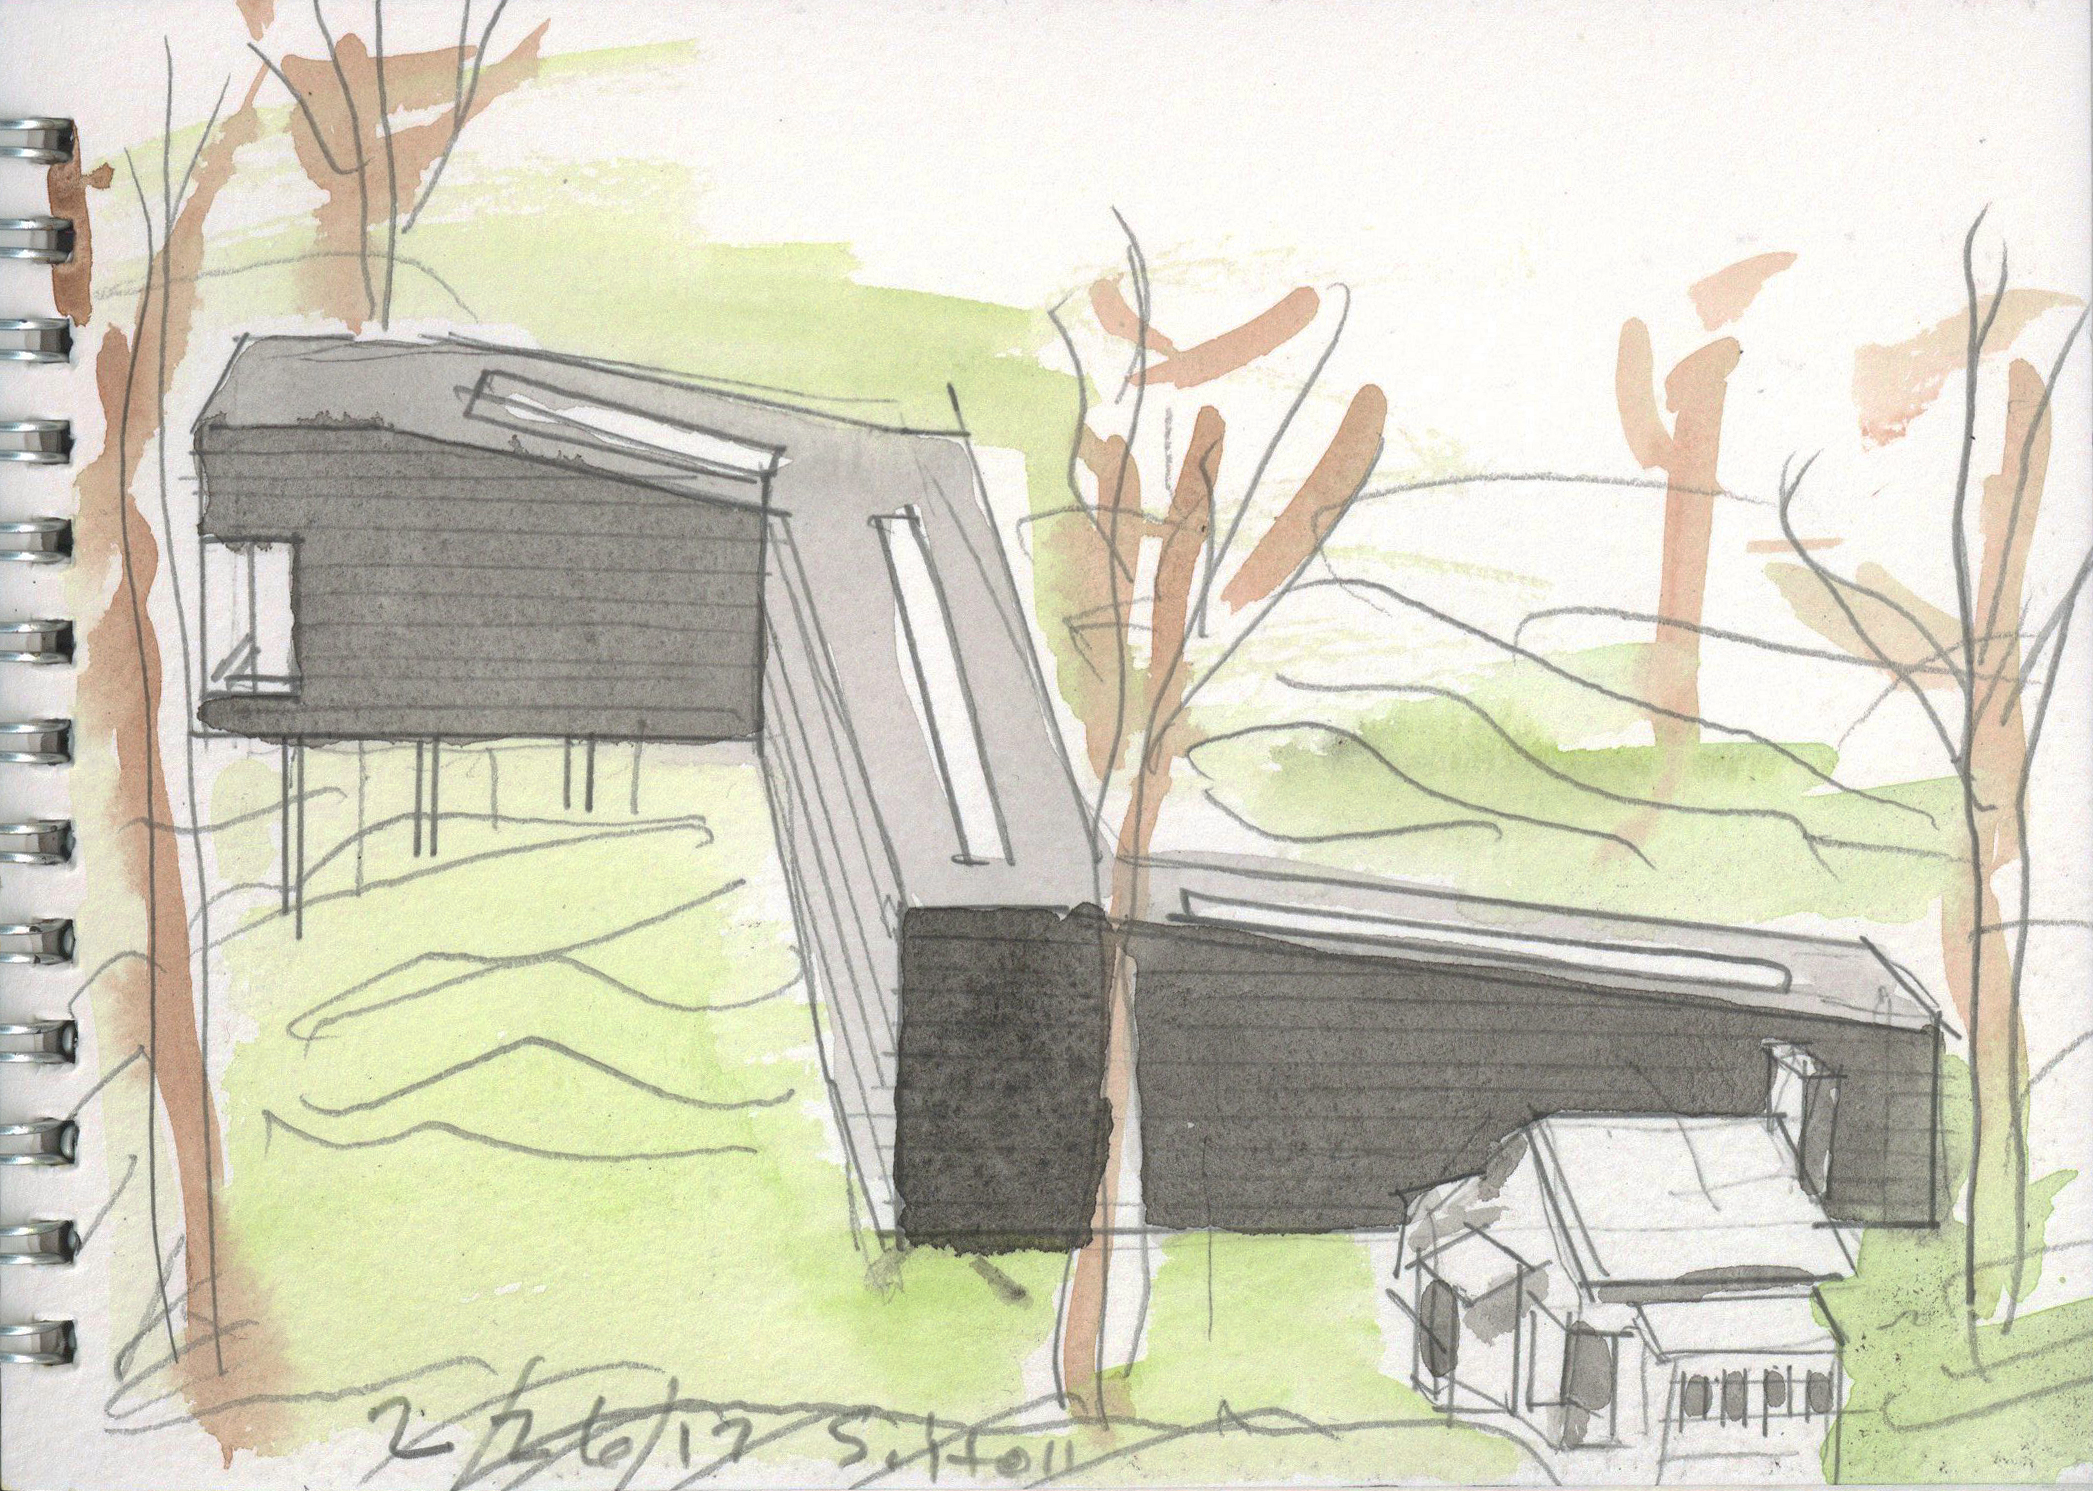 Steven Holl's design sketch